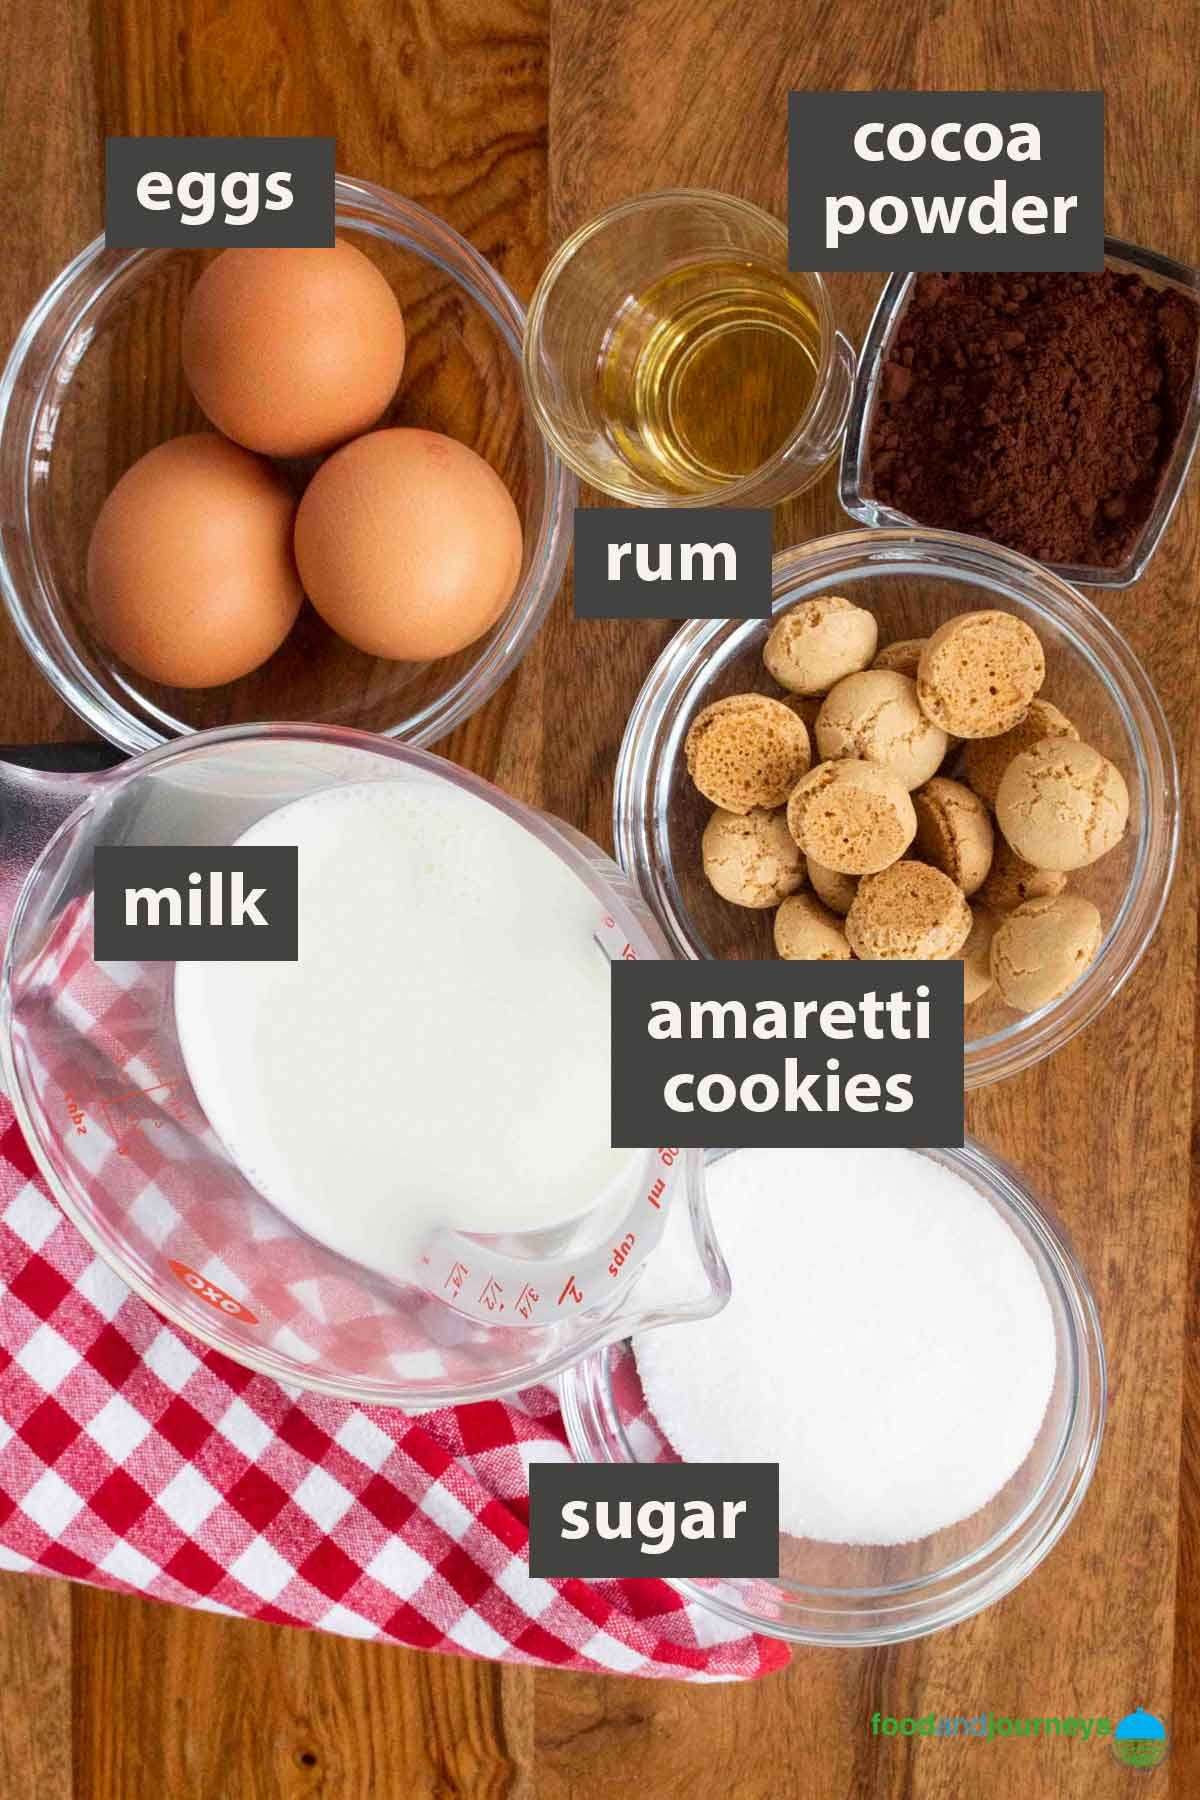 An image showing all the ingredients you need to prepare Italian Chocolate Custard at home.